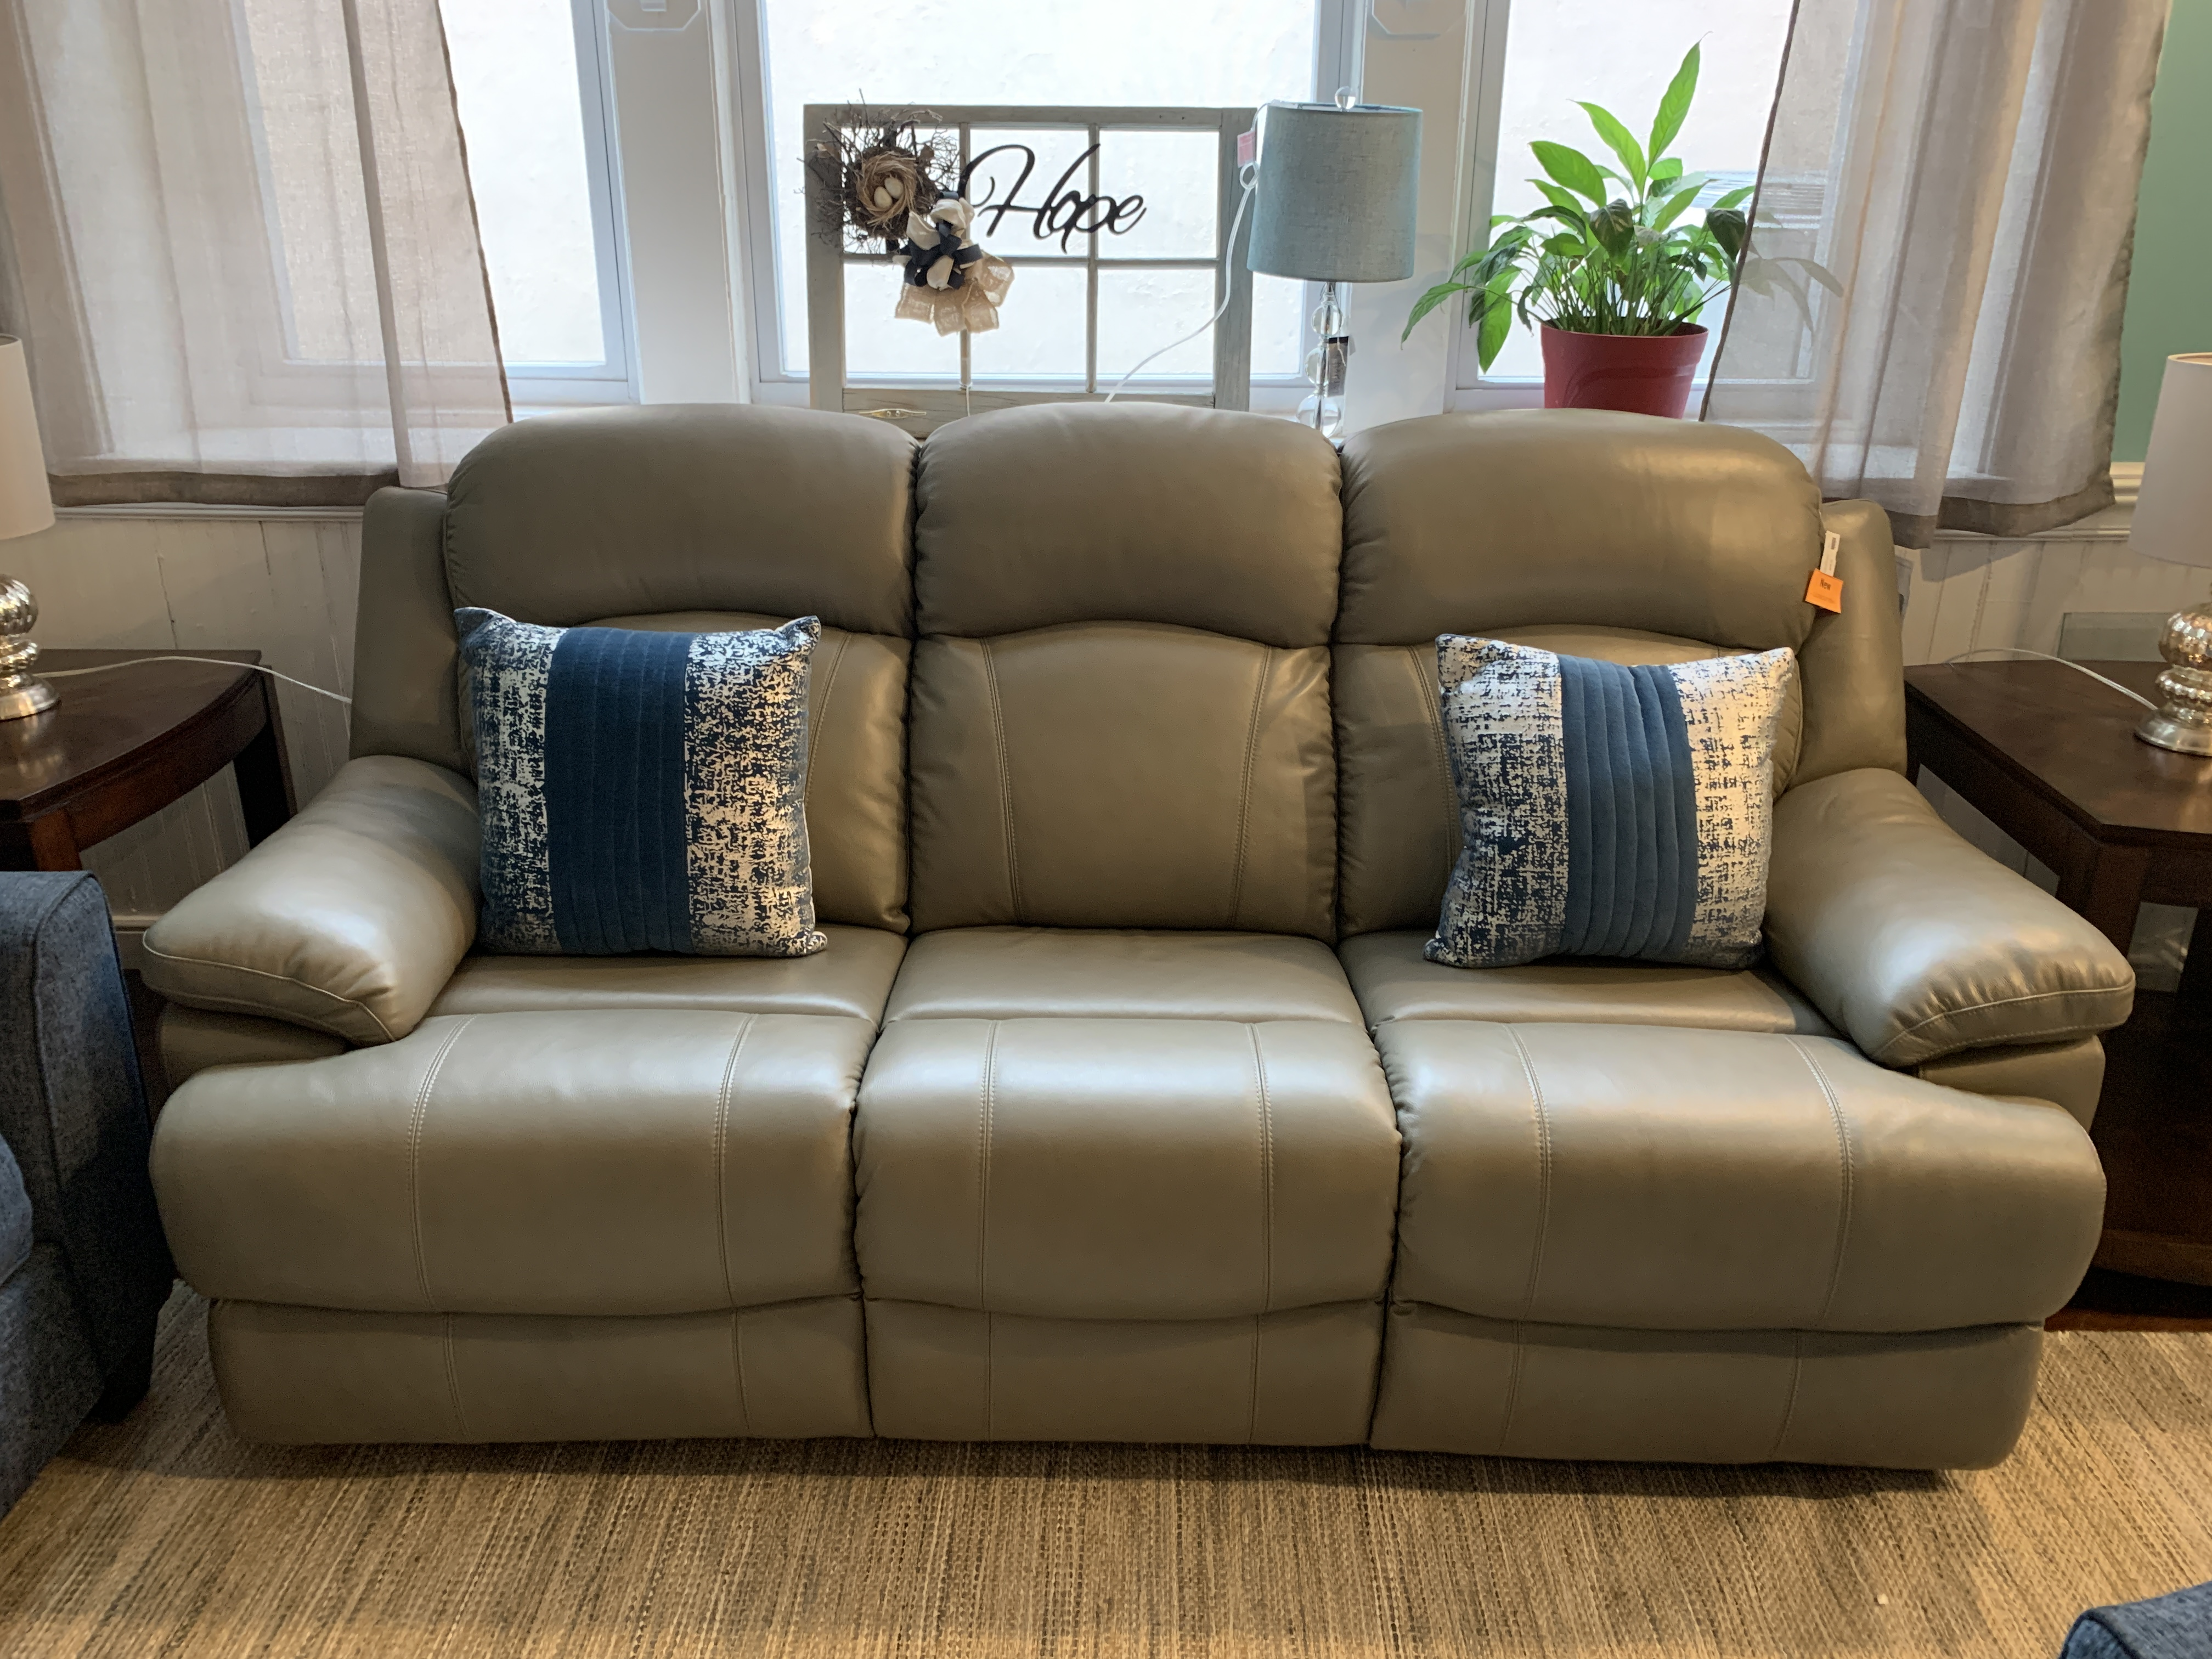 GRAY LEATHER DOUBLE RECLINING SOFA